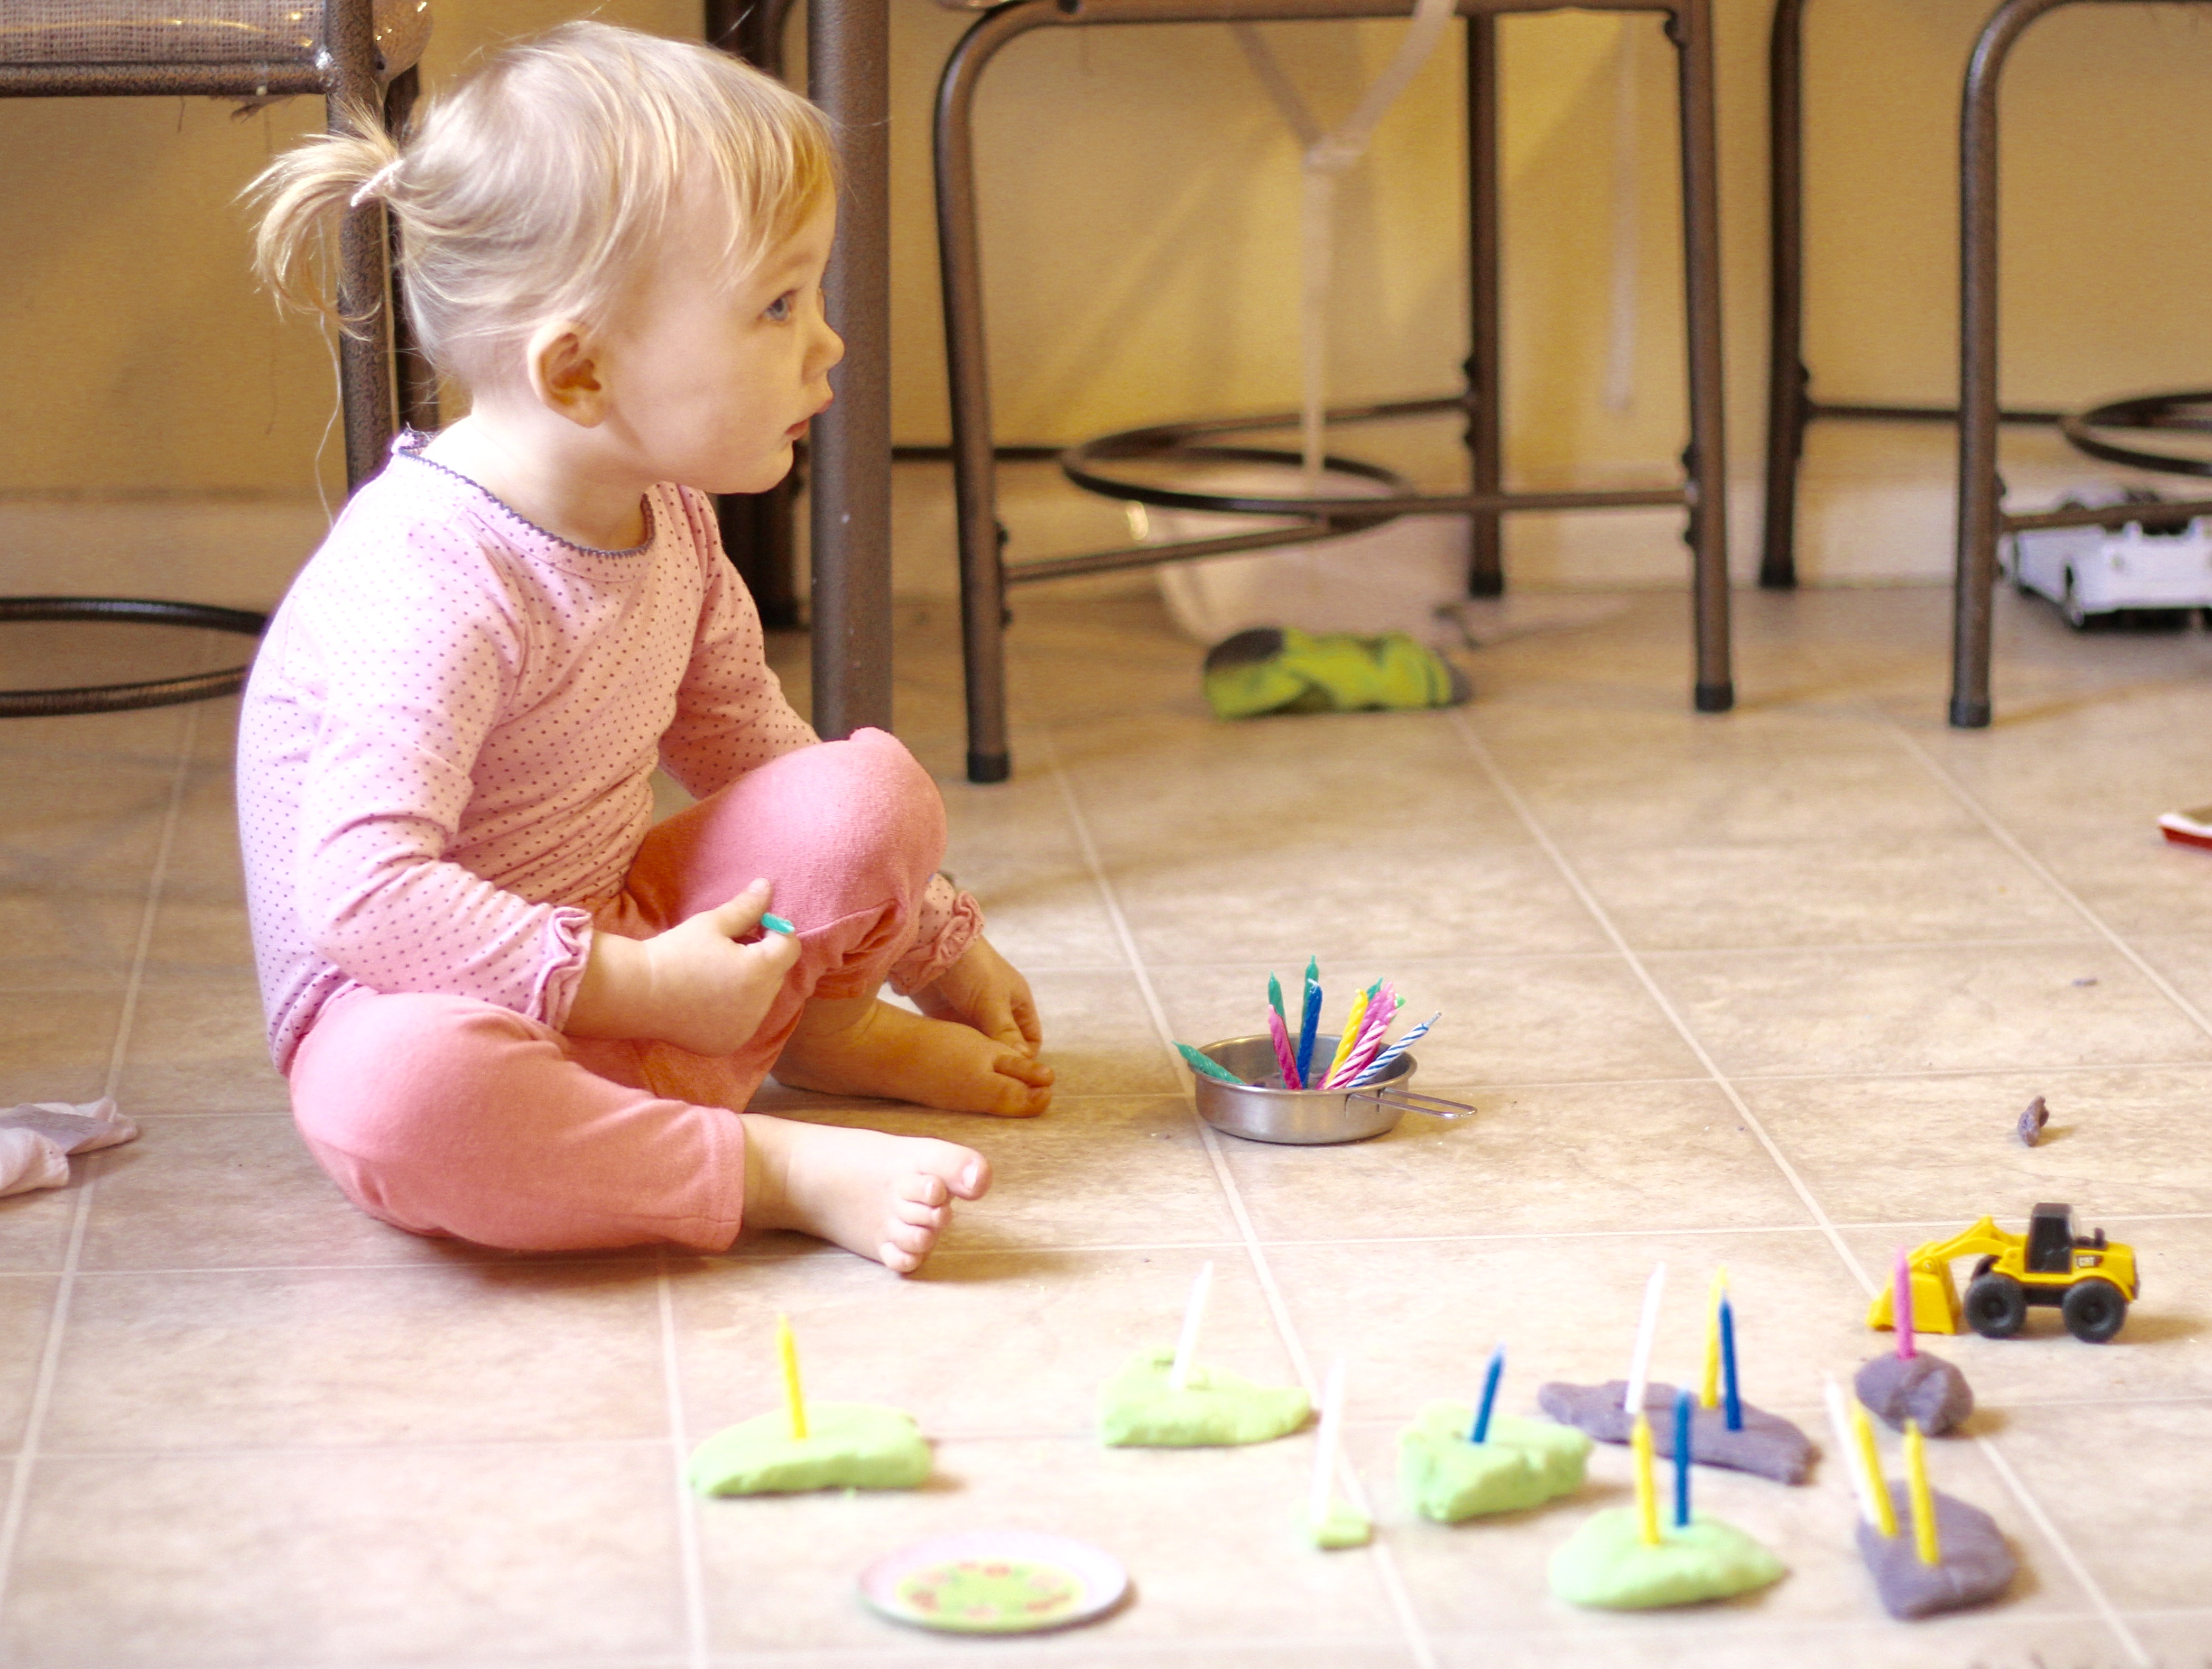 Play dough fun for toddlers